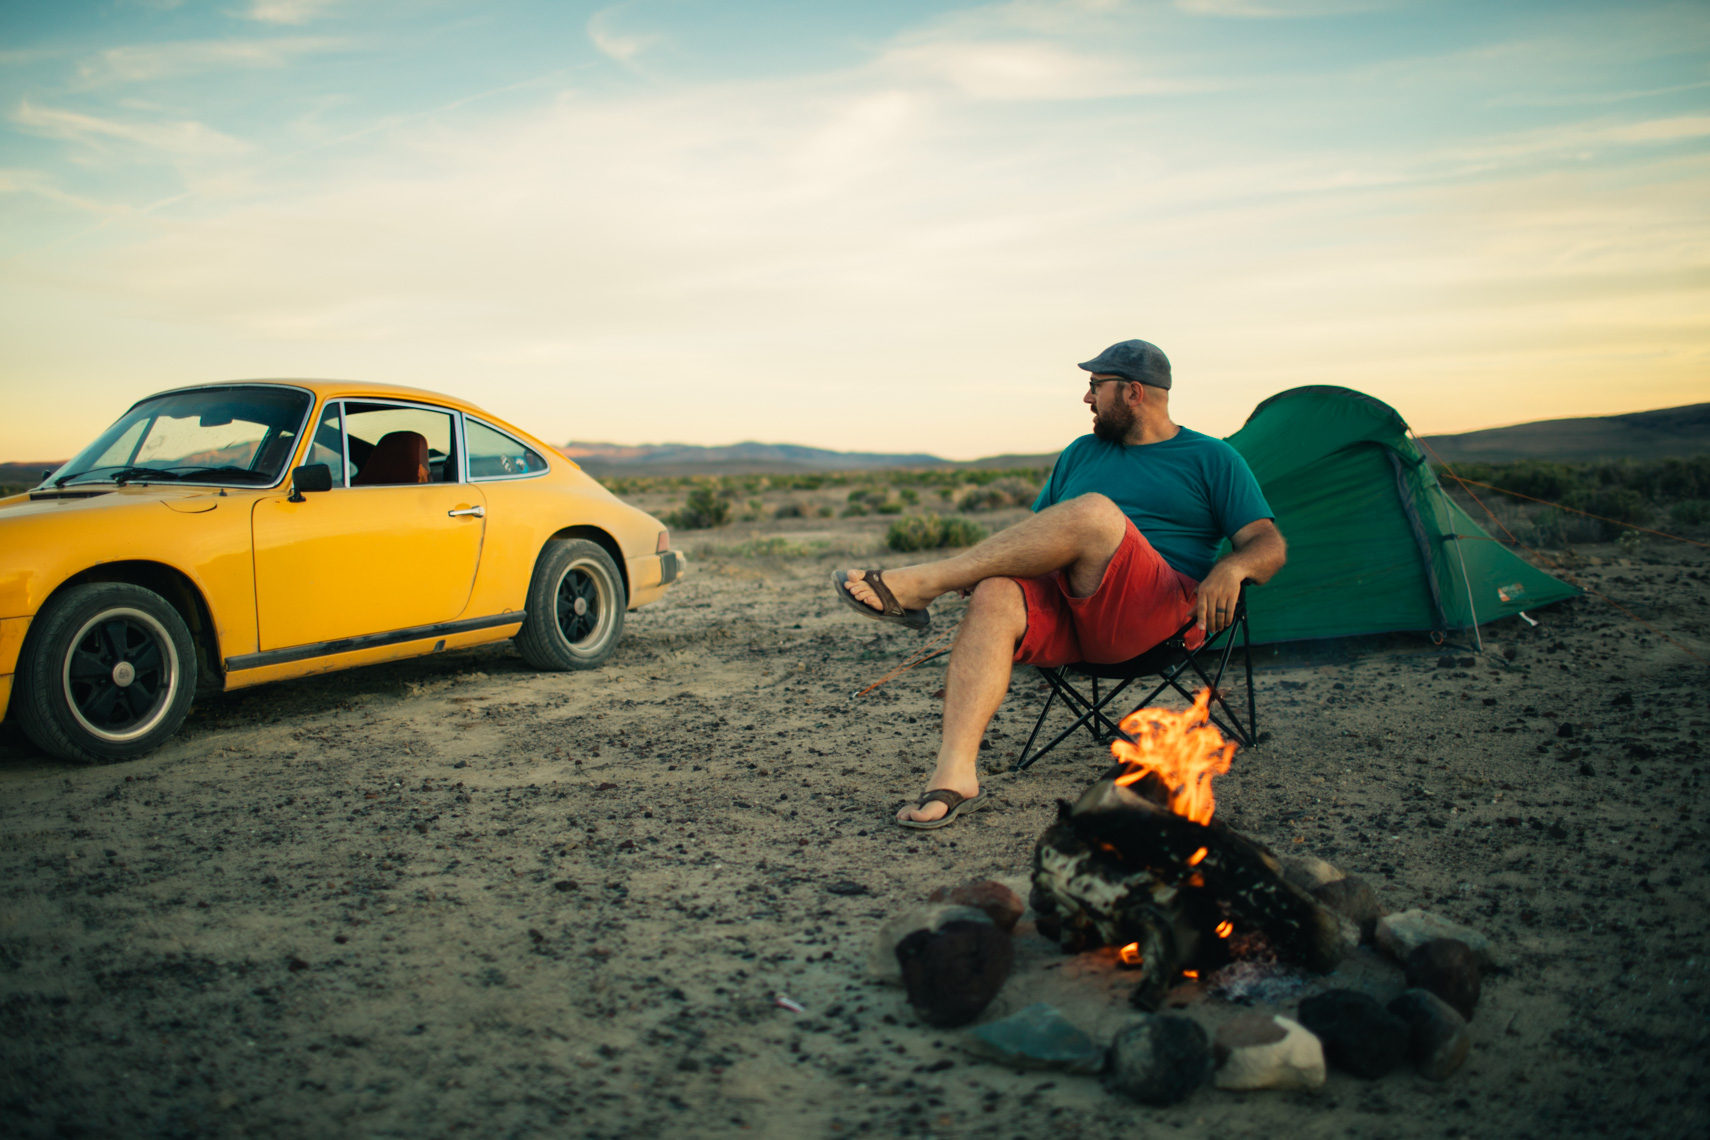 Man Relaxing In Desert with Porsche